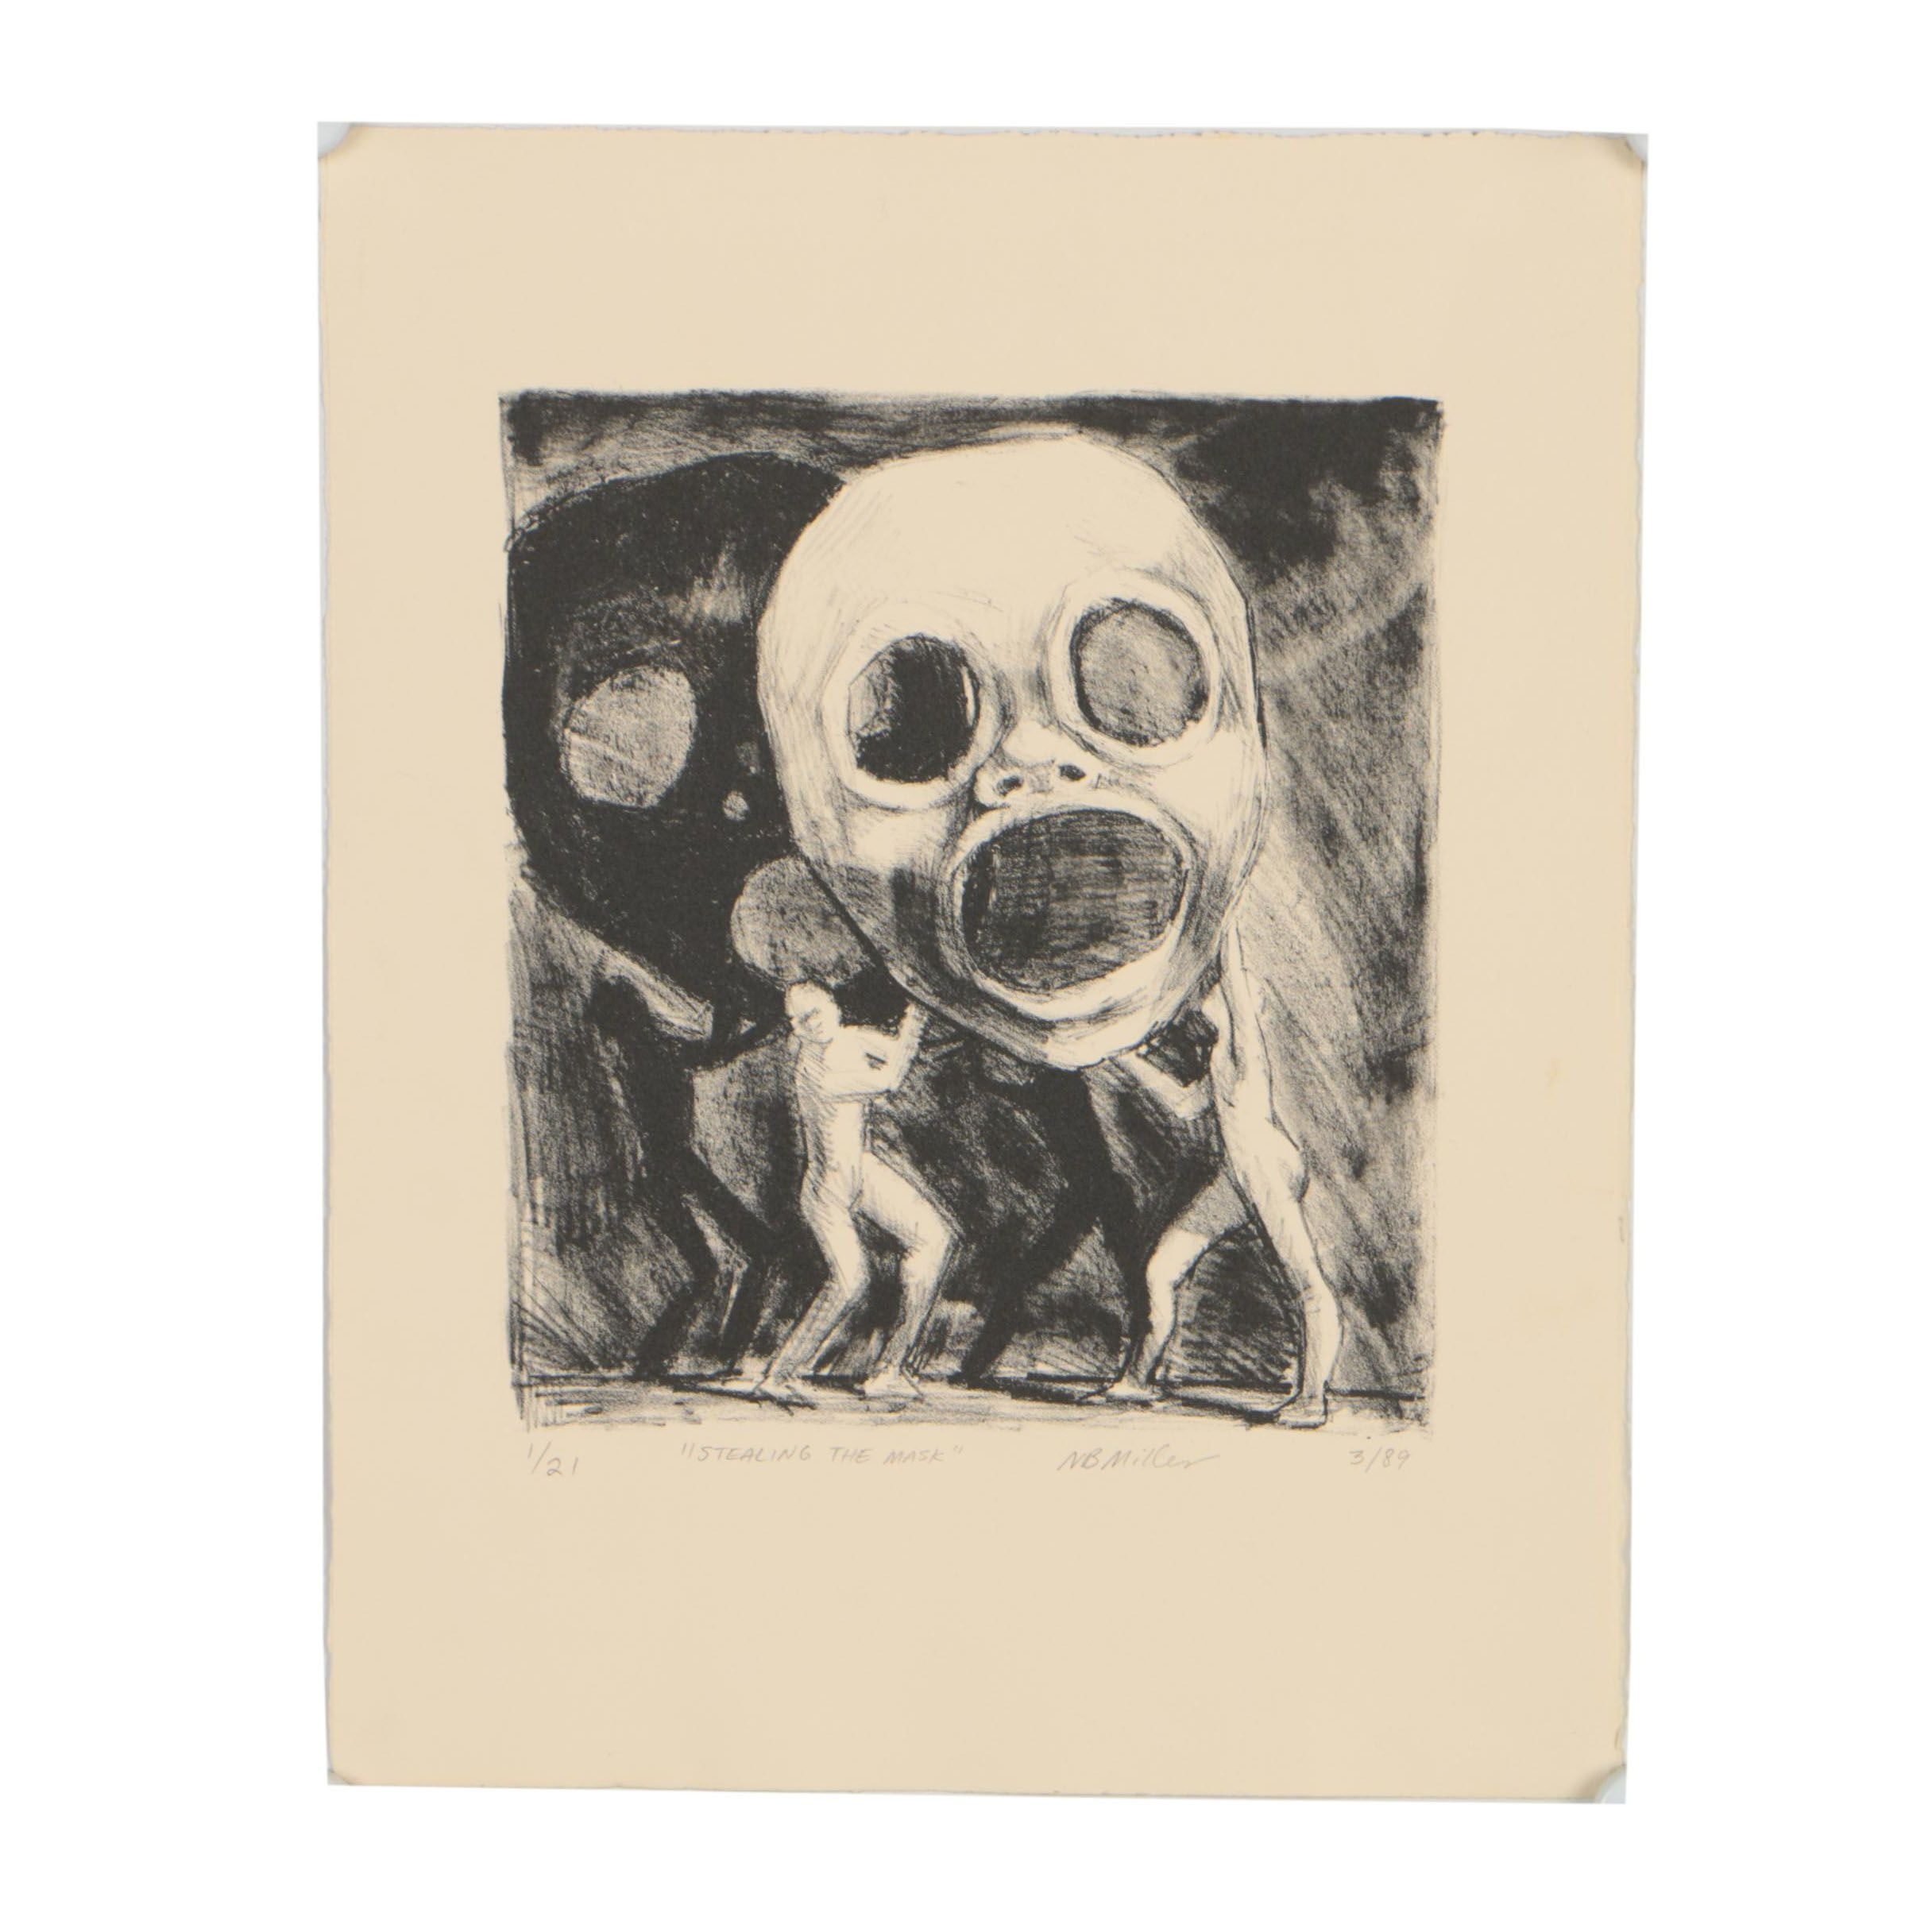 """Nancy Bea Miller 1989 Lithograph """"Stealing the Mask"""""""